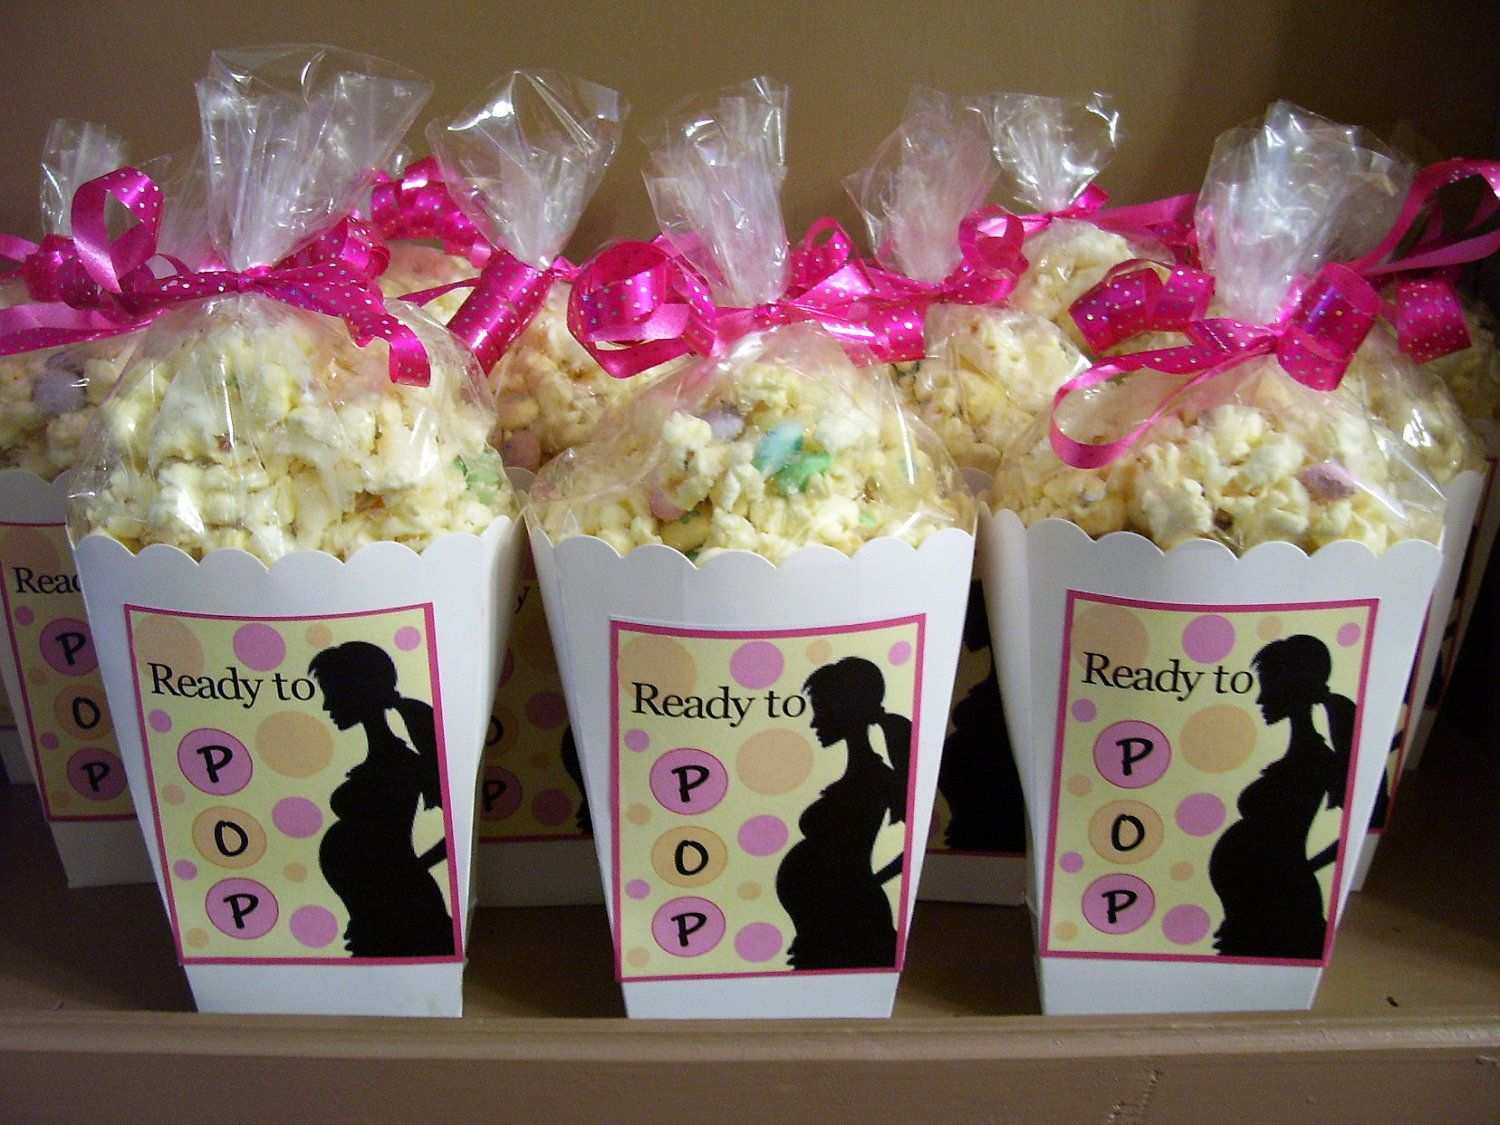 Baby Shower Ideas | Ready To Pop Baby Shower Favor Boxes By LarkPaperDesign  On Etsy